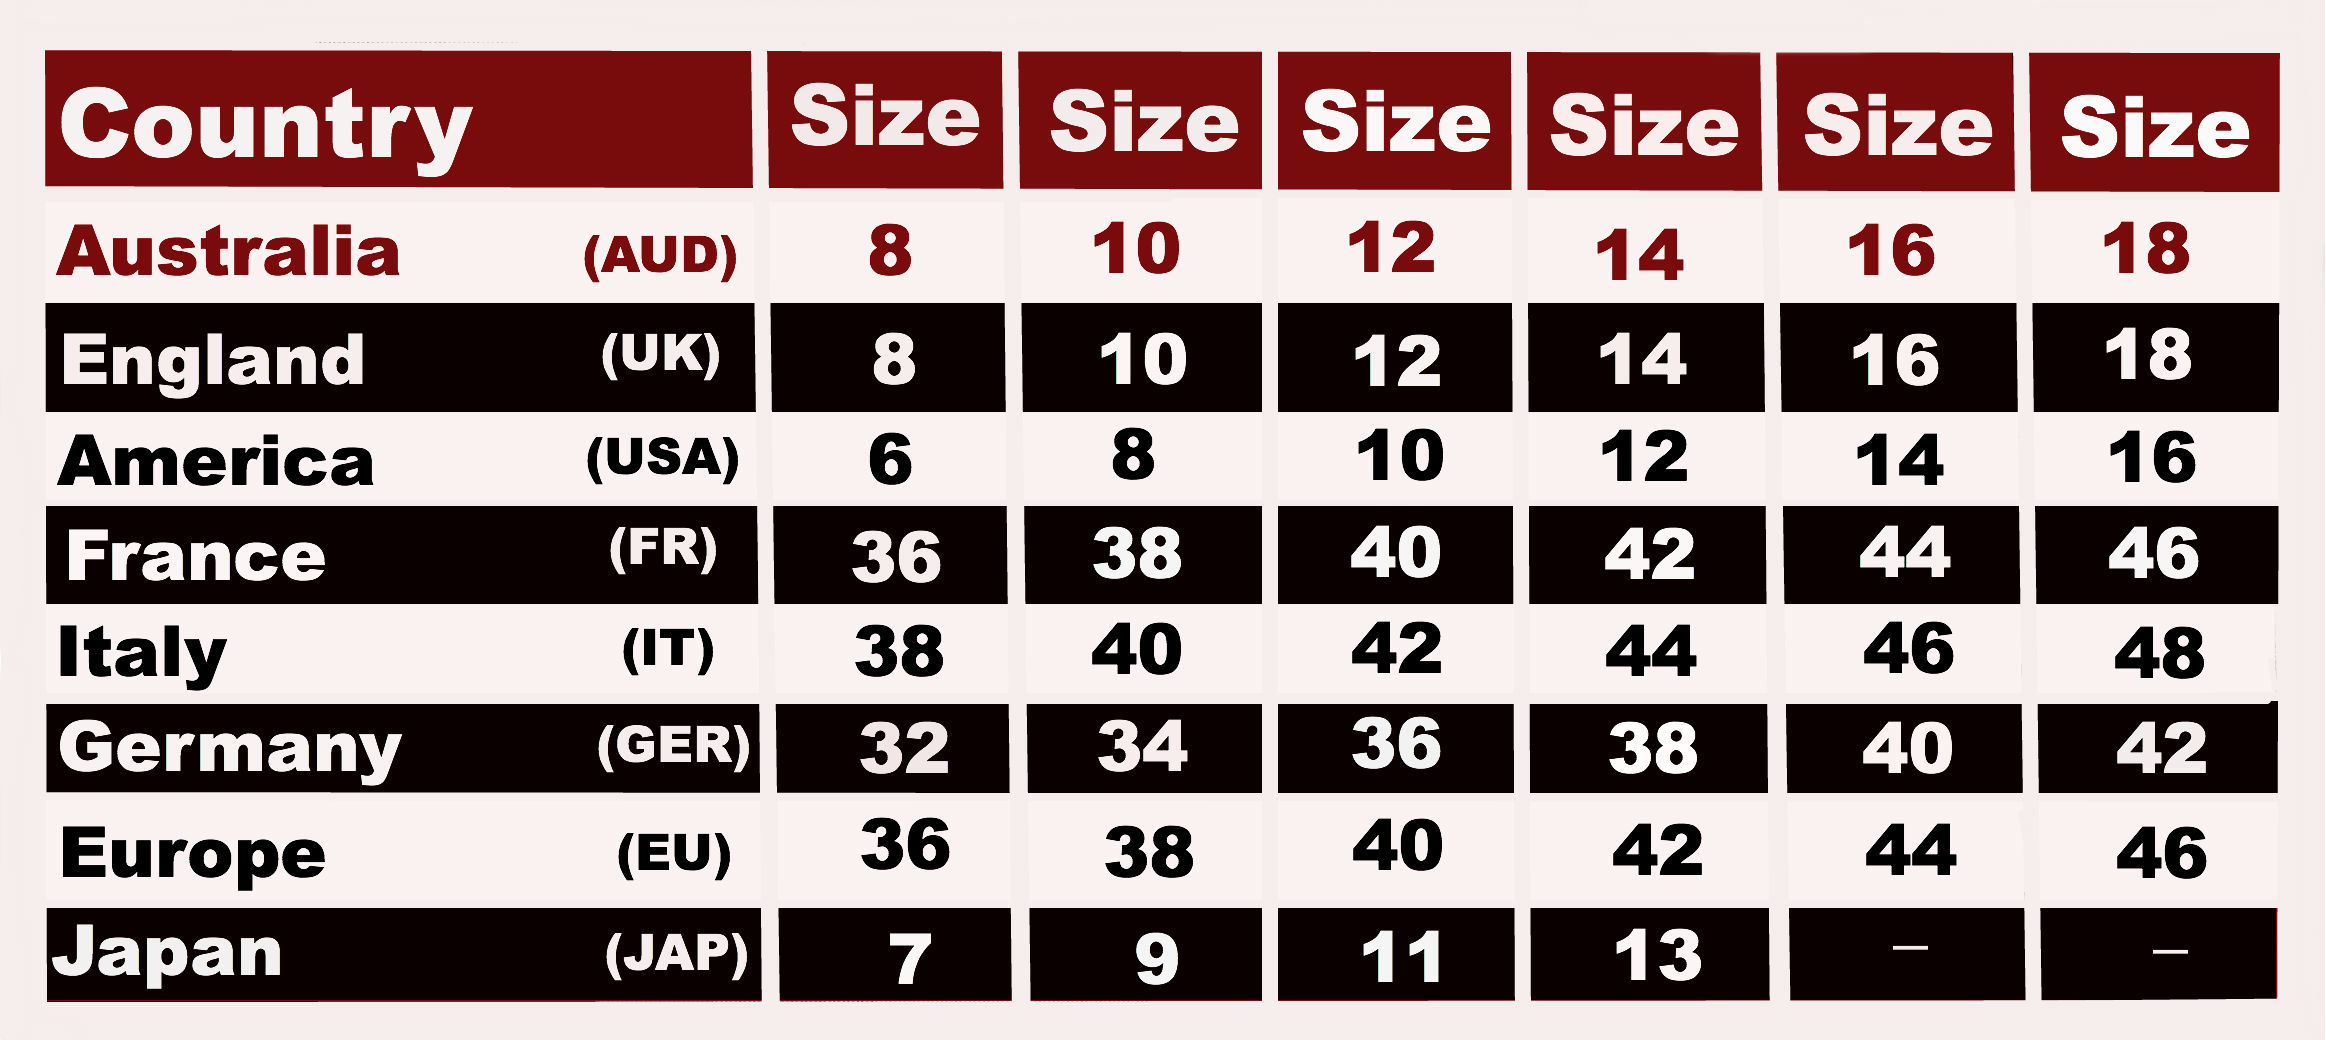 international-sizing-chart2.jpg